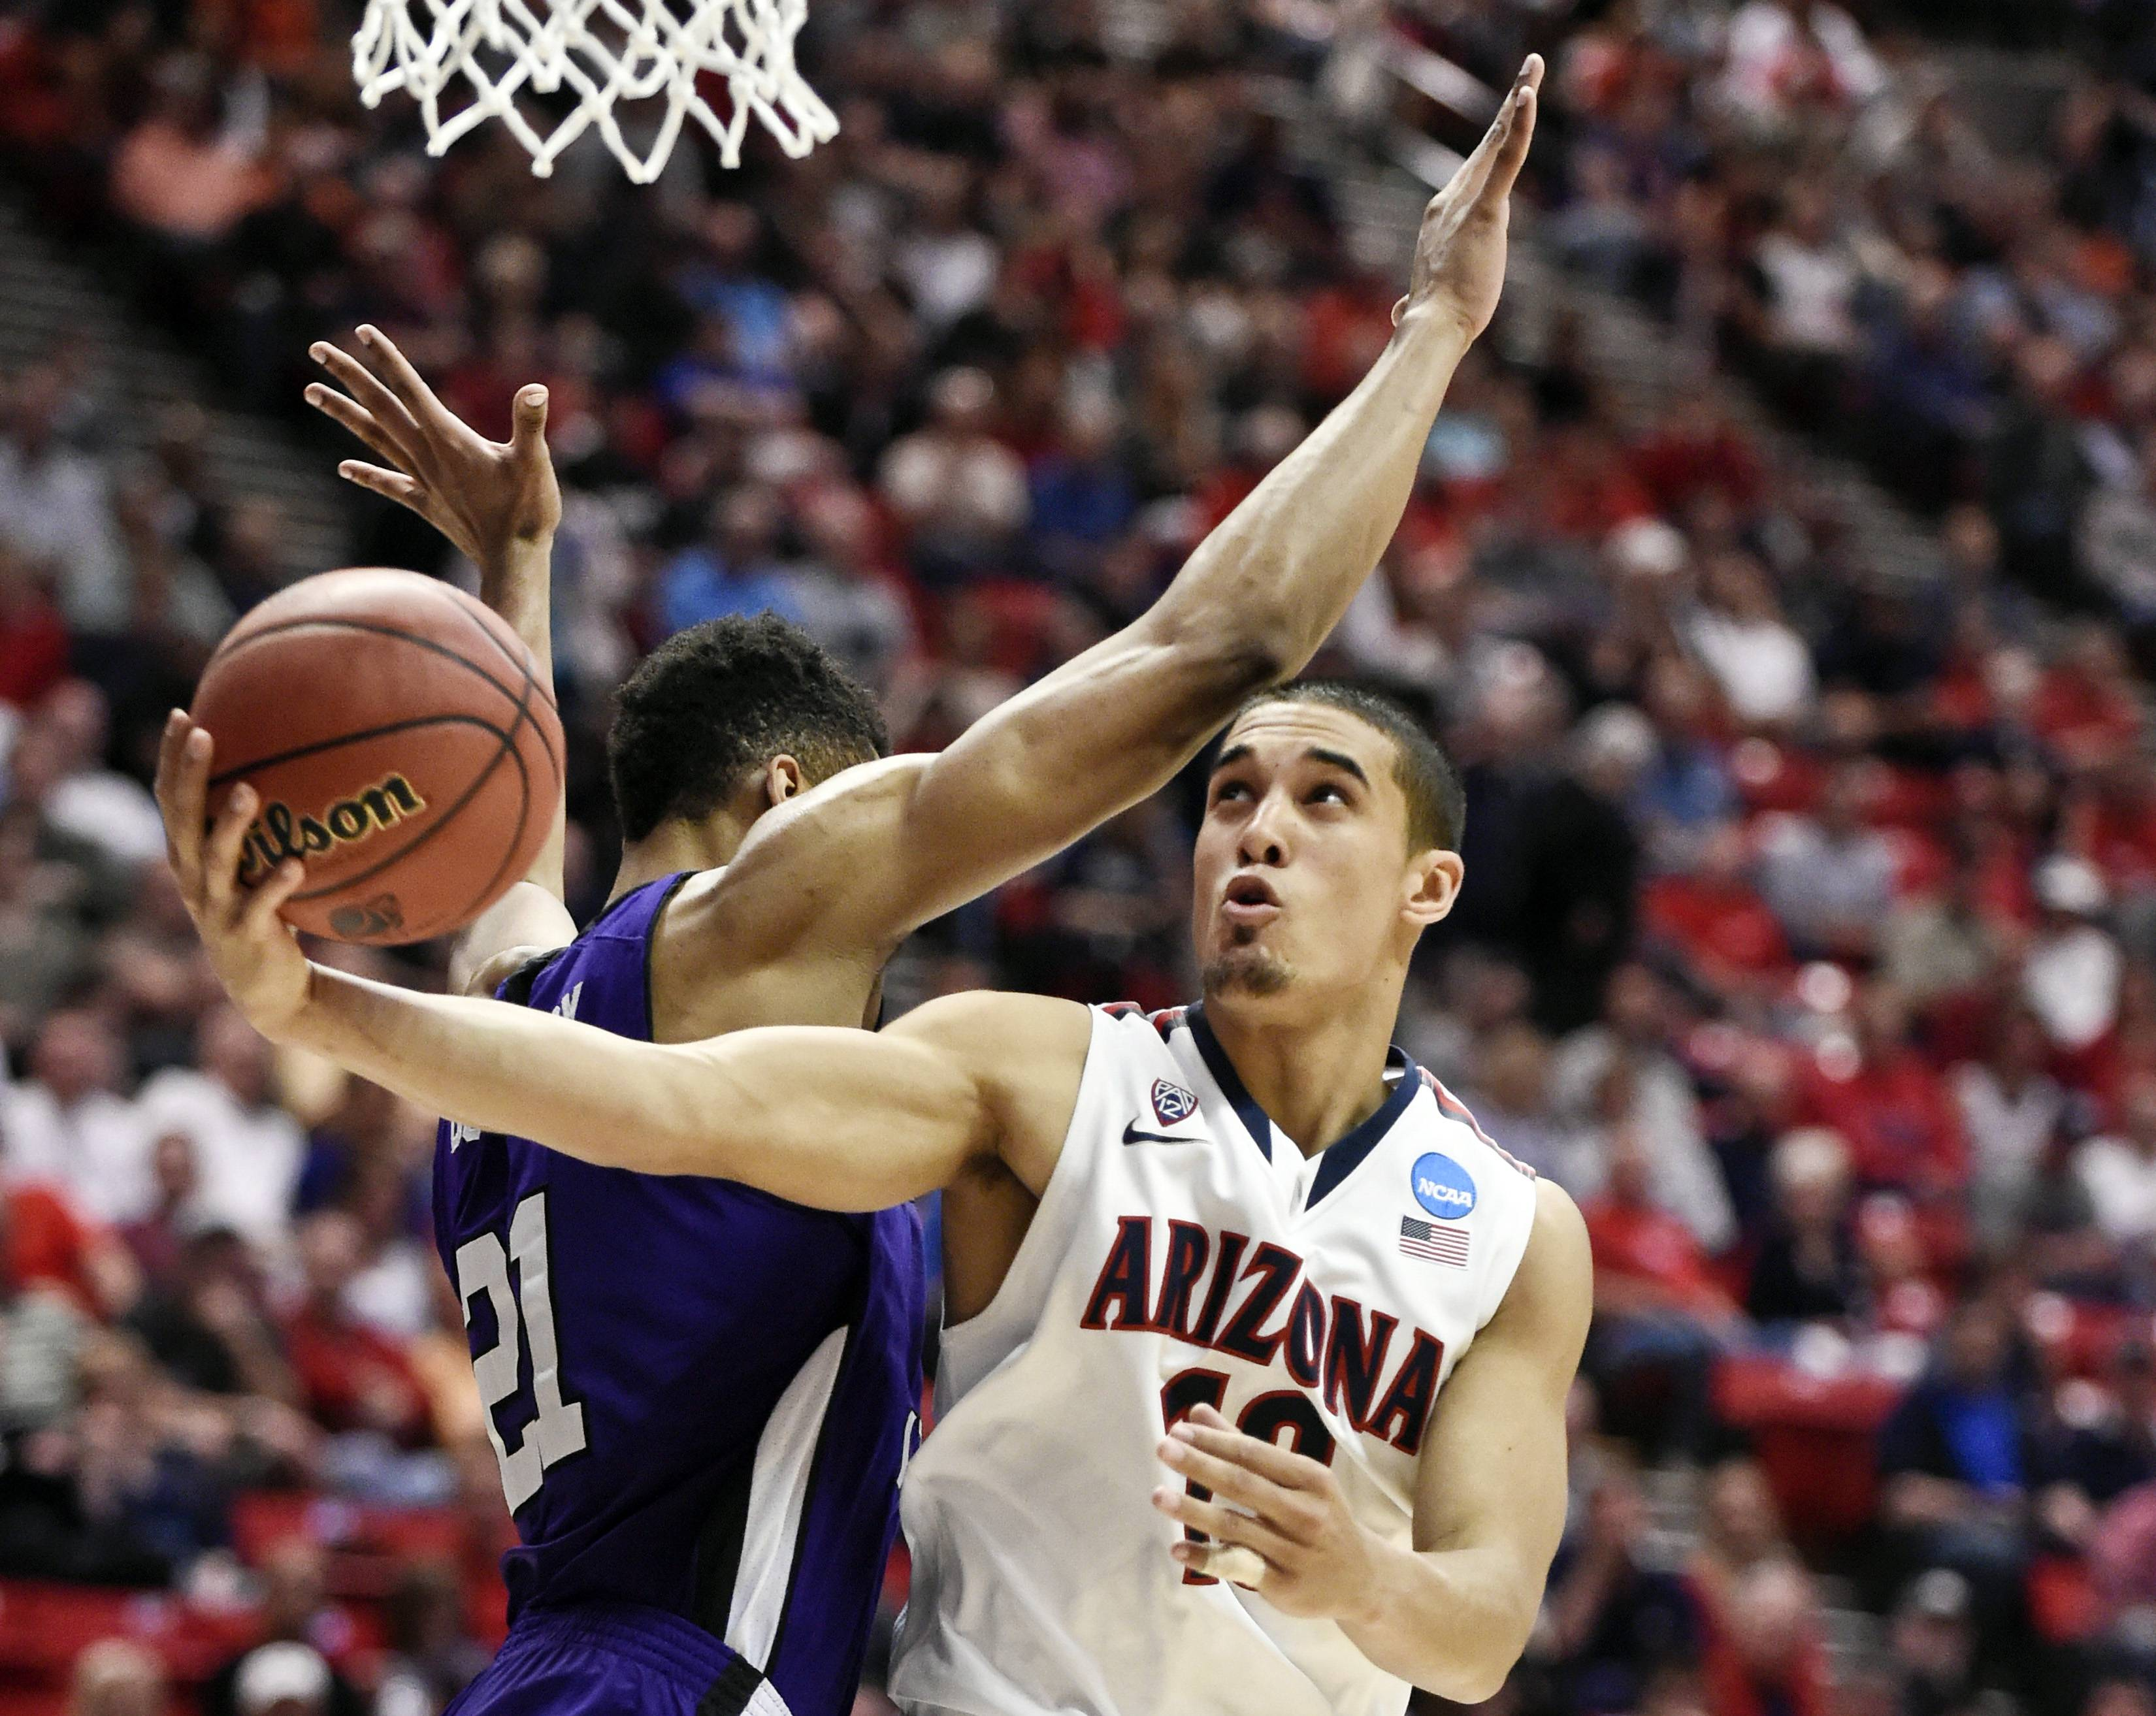 Arizona overpowers Weber State 68-59 in West